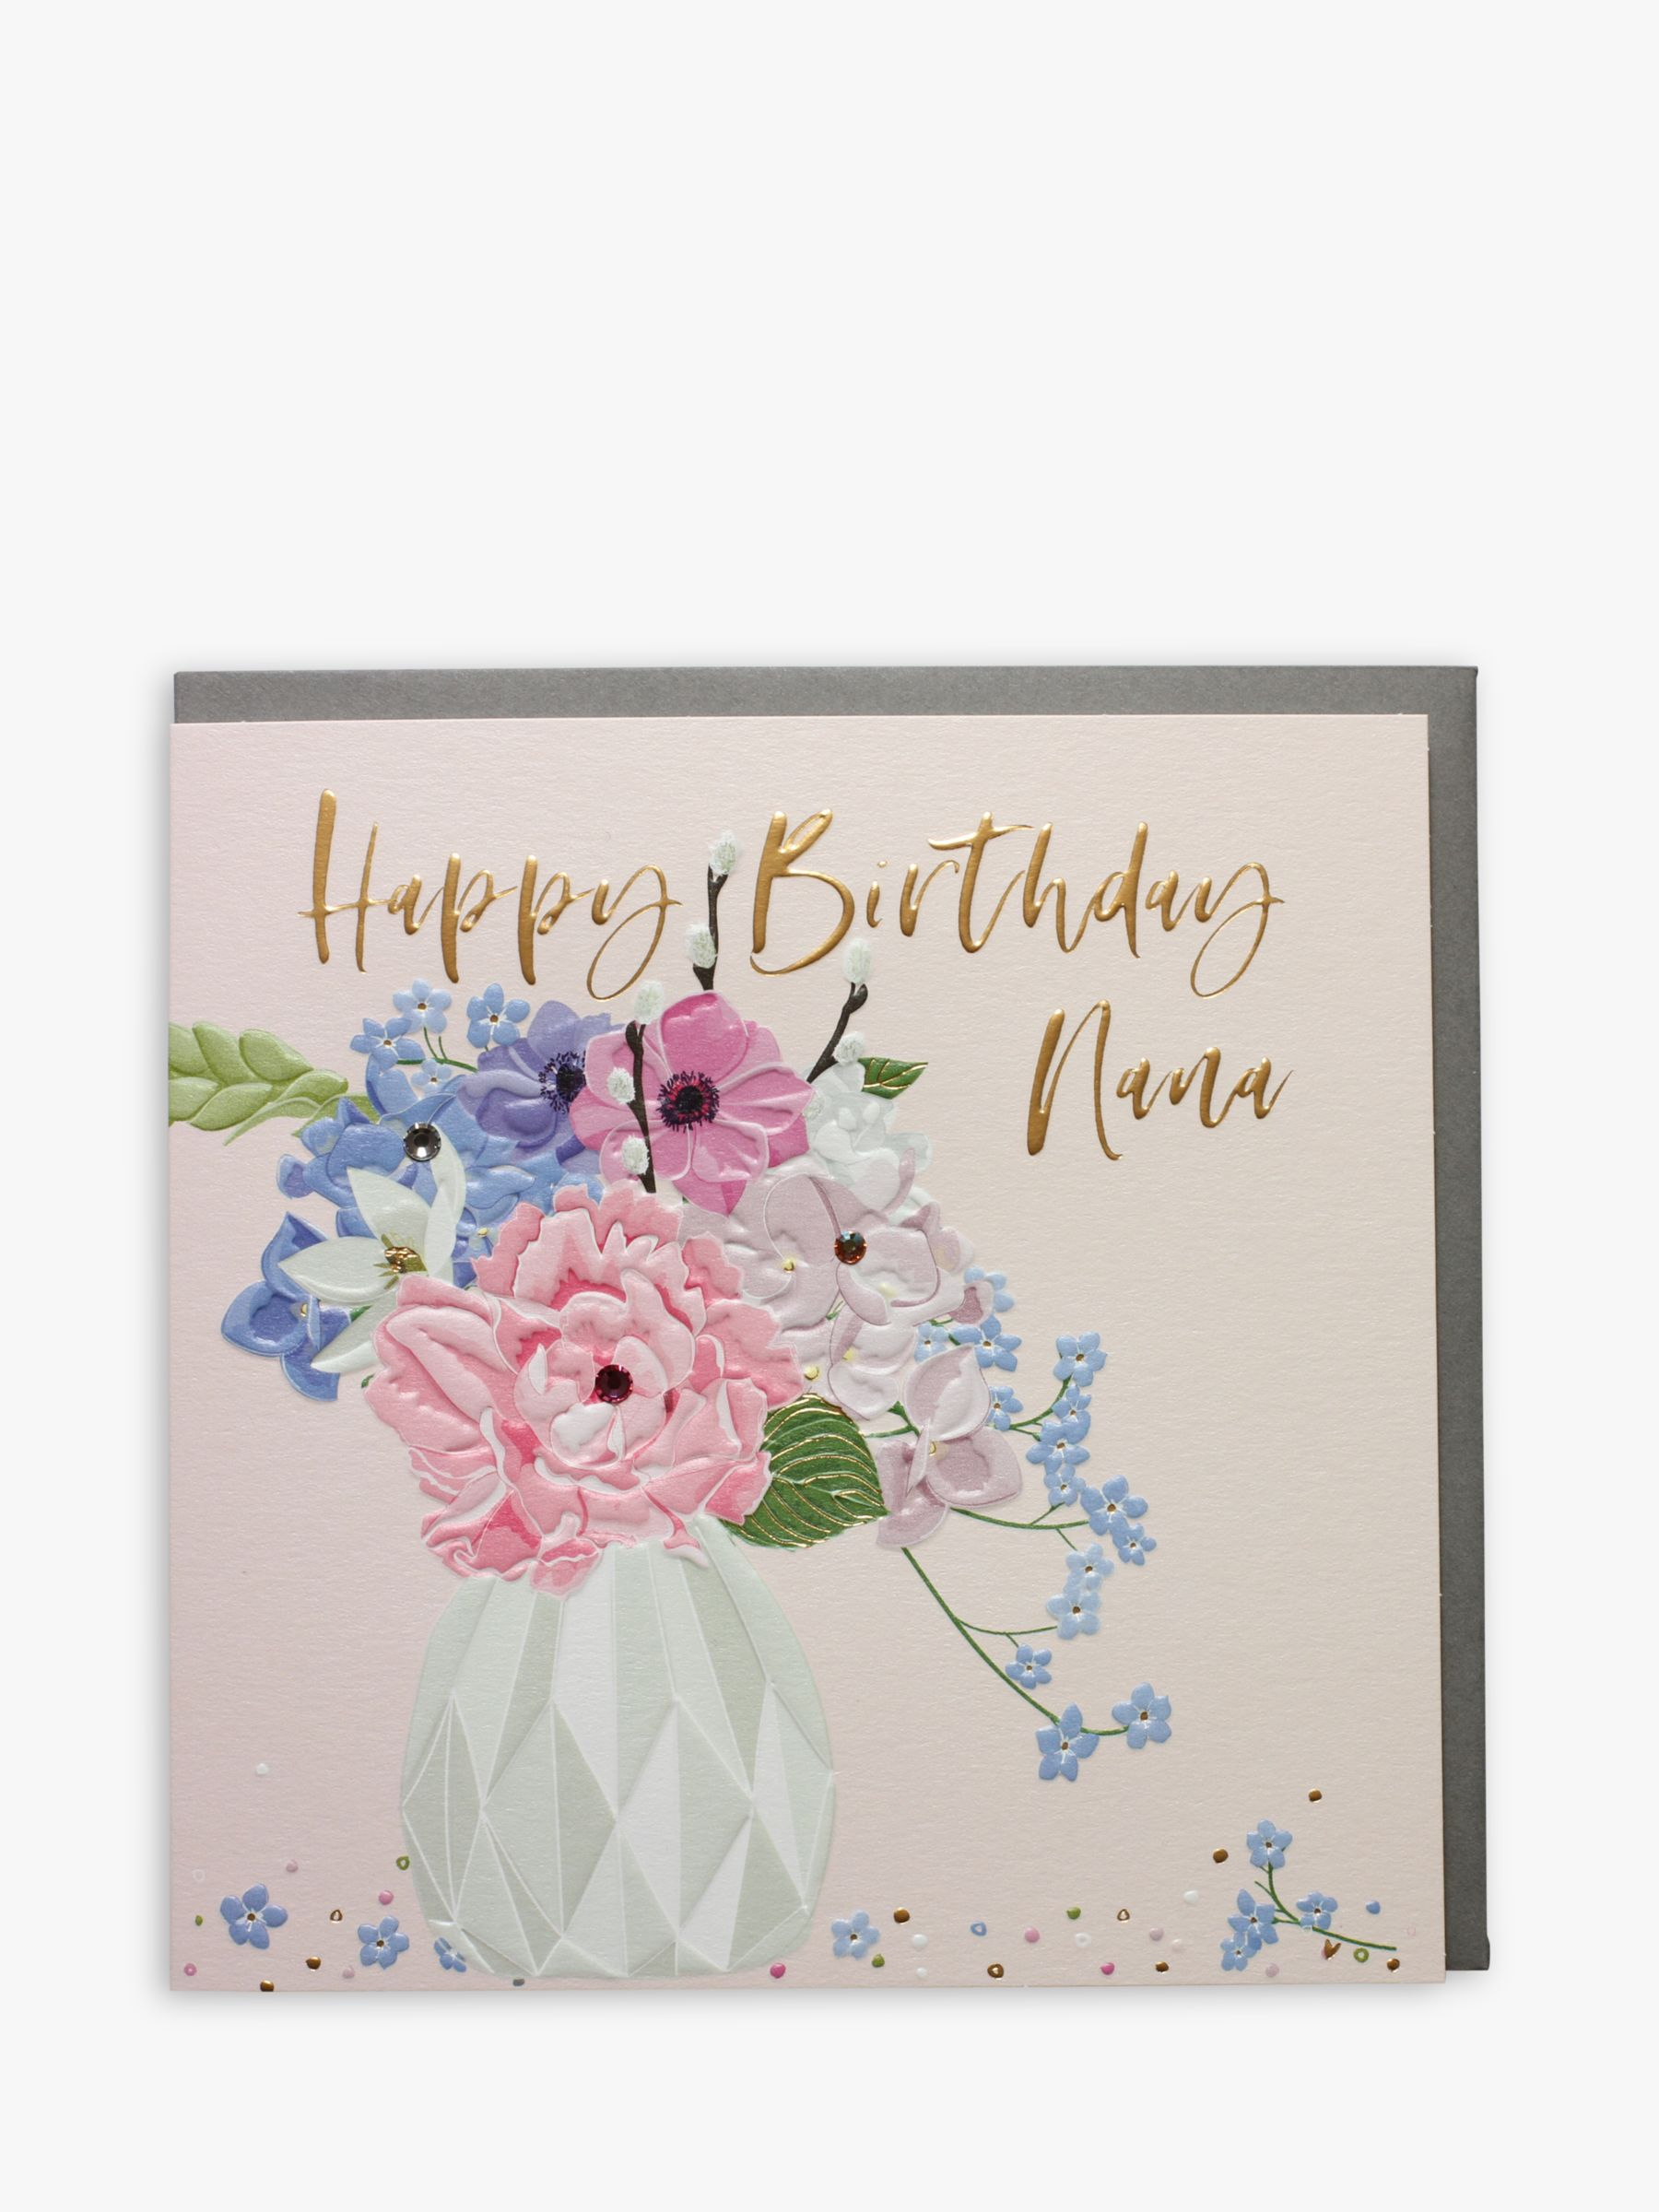 Belly Button Designs Floral Nana Birthday Card At John Lewis Partners